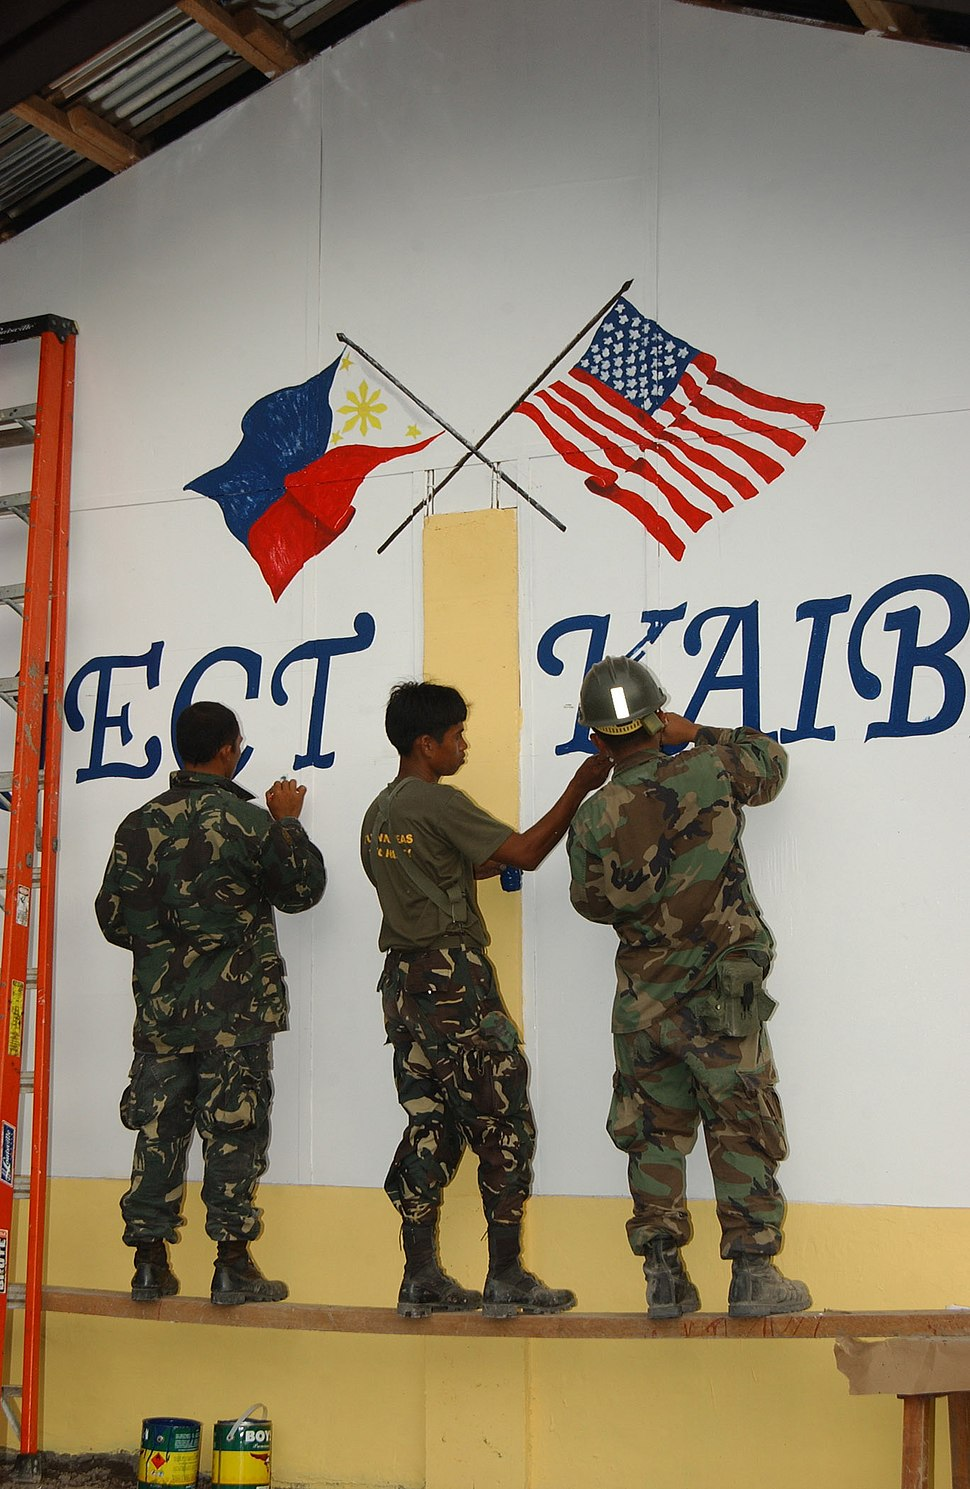 2 Filipino soldiers painting friendship flags 070217-N-4198C-001 0V7HO